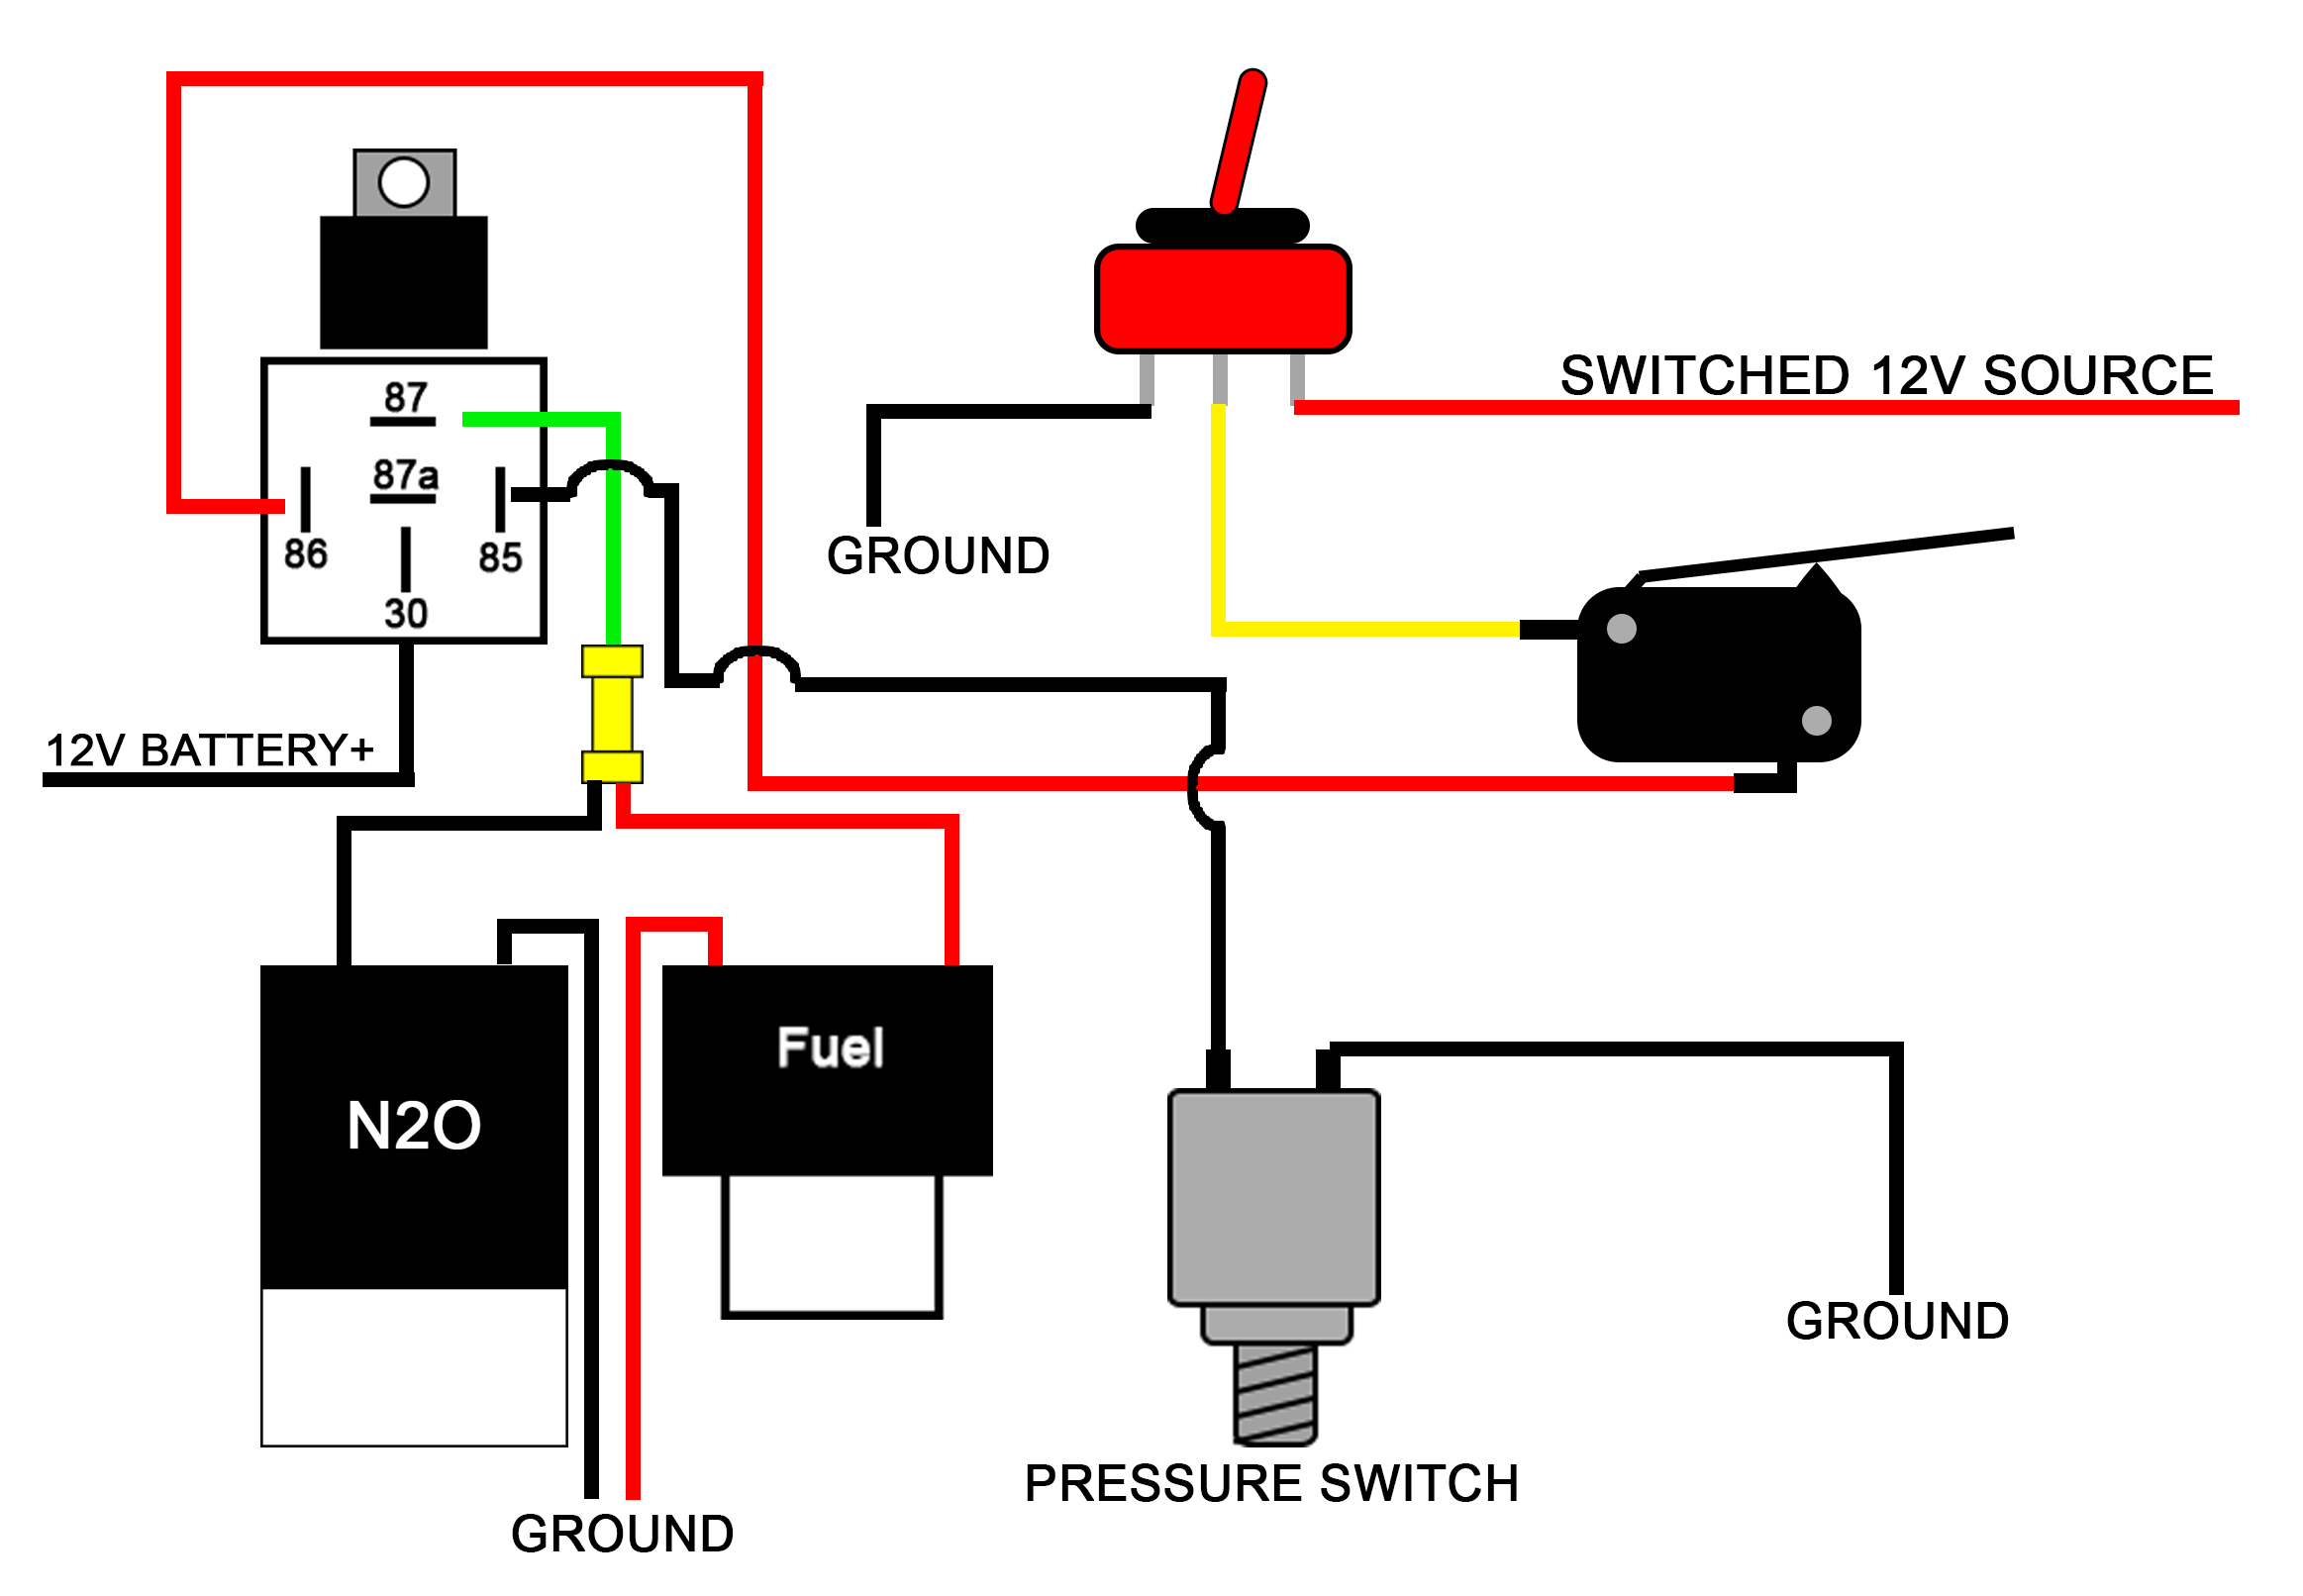 Two Stage Pressure Switch Wiring Diagram - Ego Switch Wiring Diagram -  toshiba.2006vtx.jeanjaures37.fr | Two Stage Pressure Switch Wiring Diagram |  | Wiring Diagram Resource